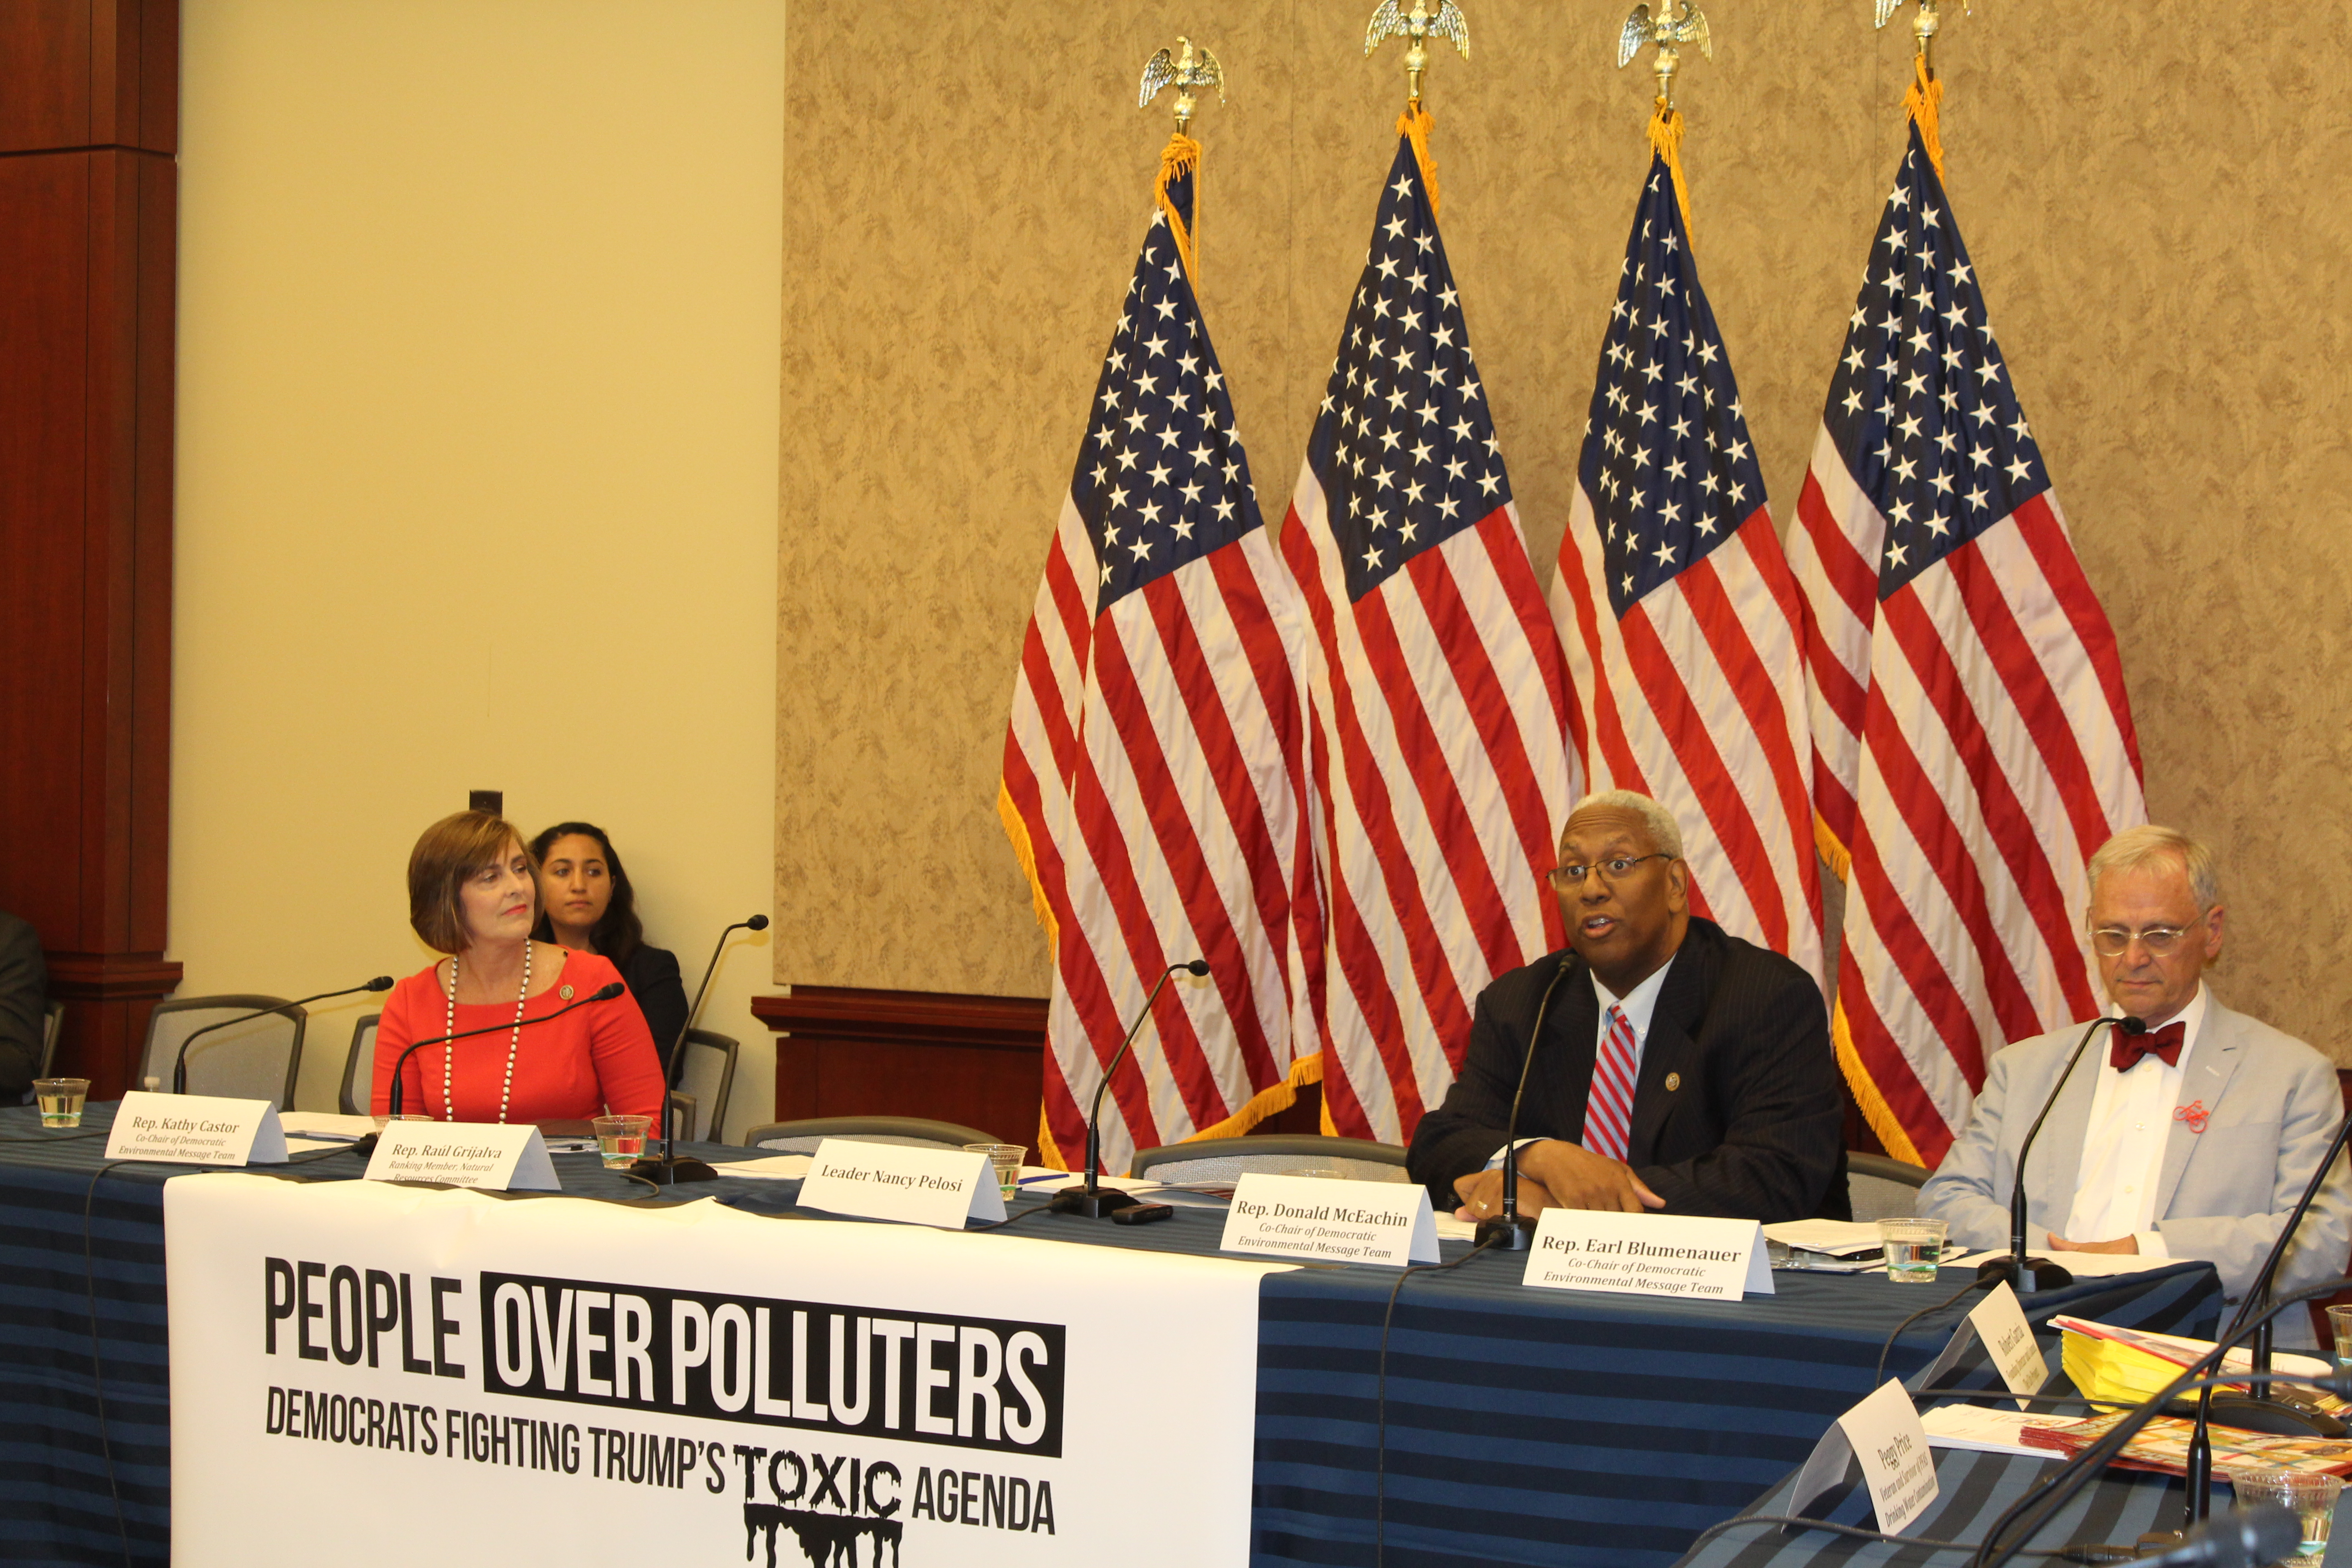 Rep. McEachin kicked off House Democrats' People Over Polluters Forum